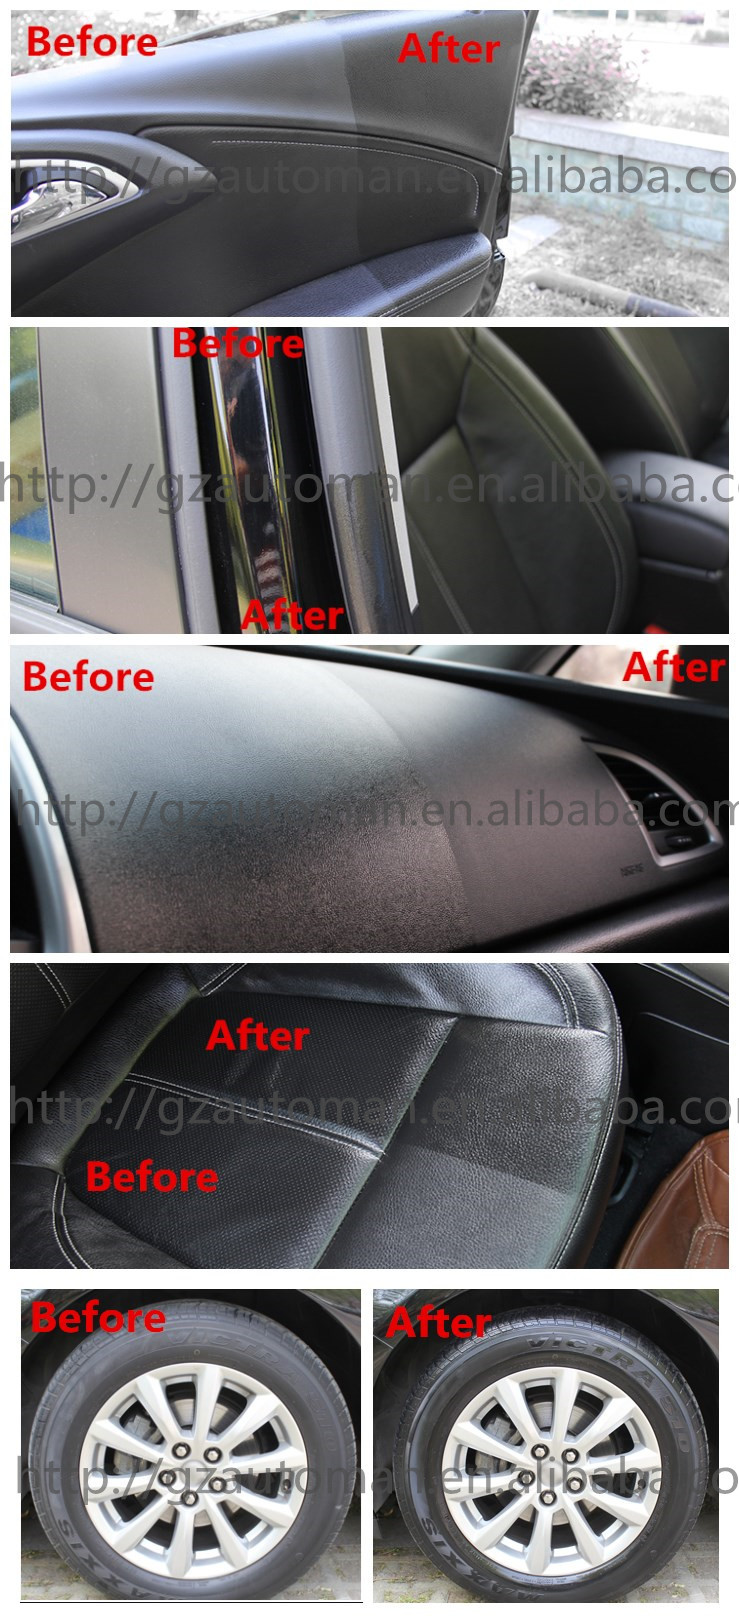 Best dashboard spray wax car polish aerosol for car interior cleaning